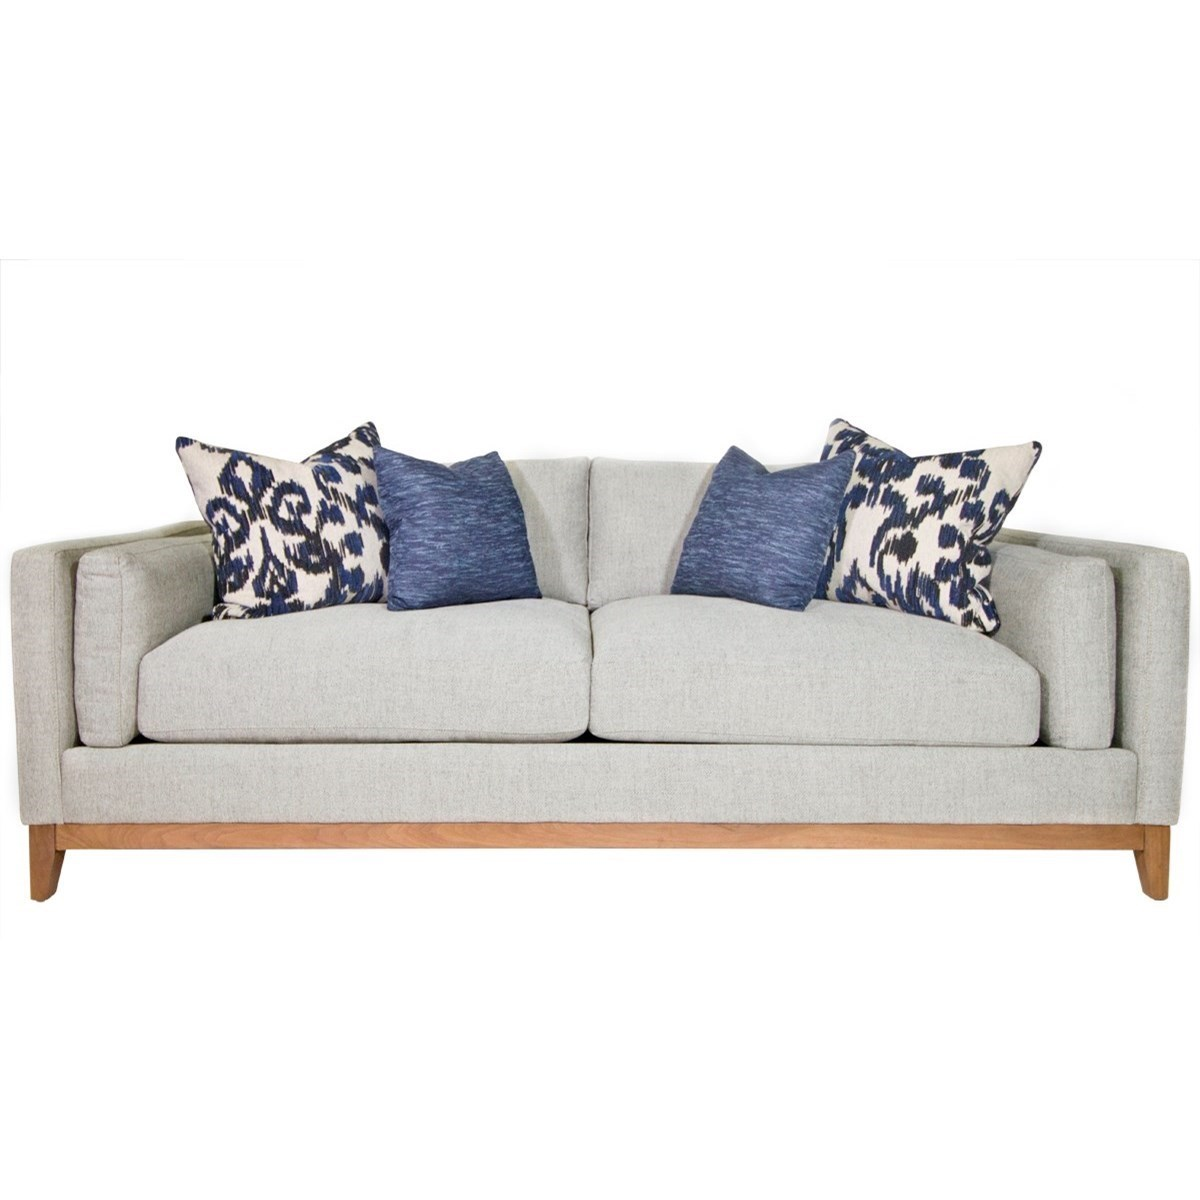 Lovely Jonathan Louis Kelsey Modern Estate Sofa With Bolster Arm Pillows And  Exposed Wood Base Rail   Darvin Furniture   Sofas